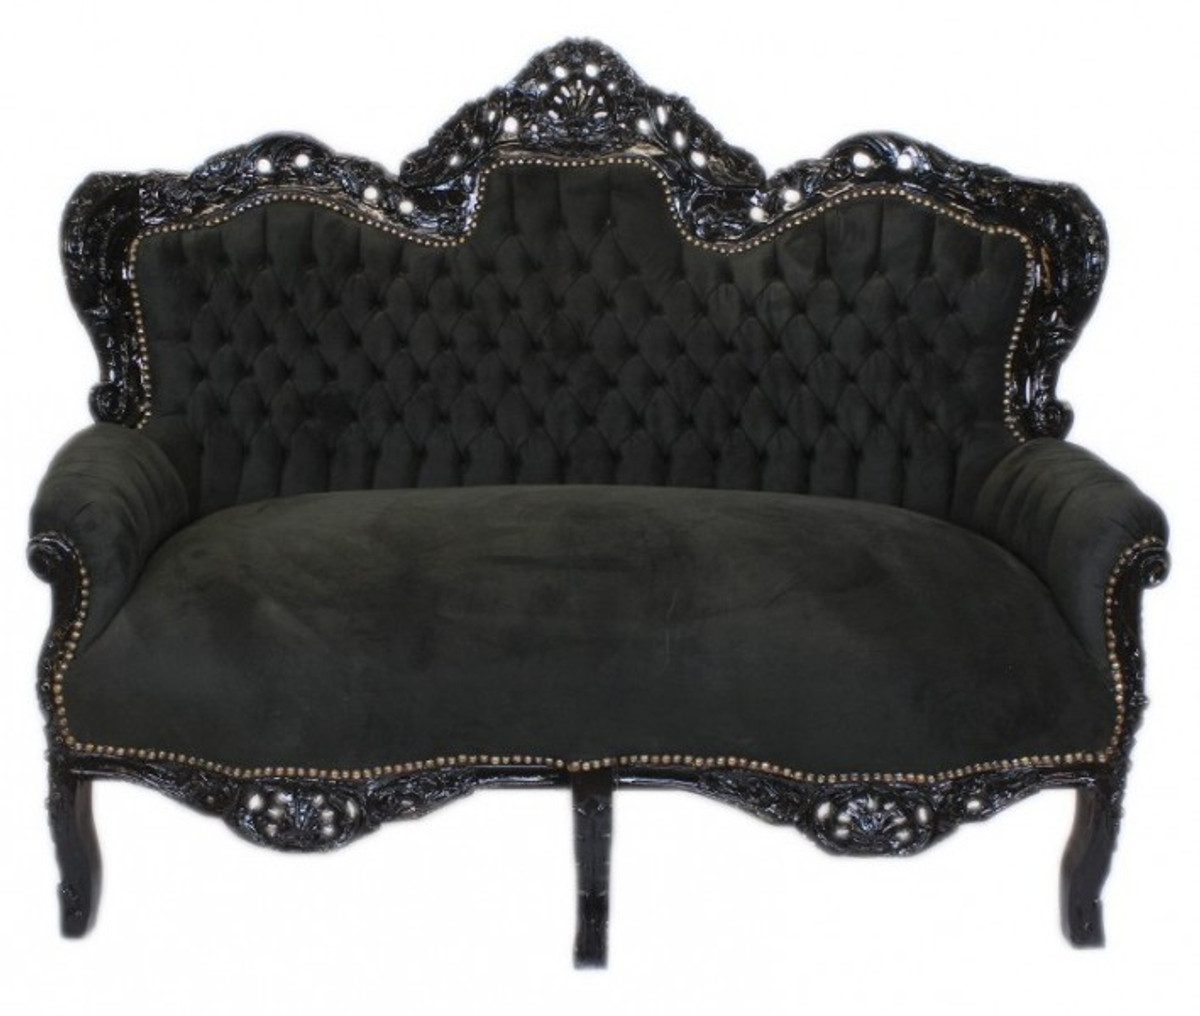 casa padrino barock wohnzimmer set king schwarz schwarz 2er sofa 2 sessel casa padrino. Black Bedroom Furniture Sets. Home Design Ideas